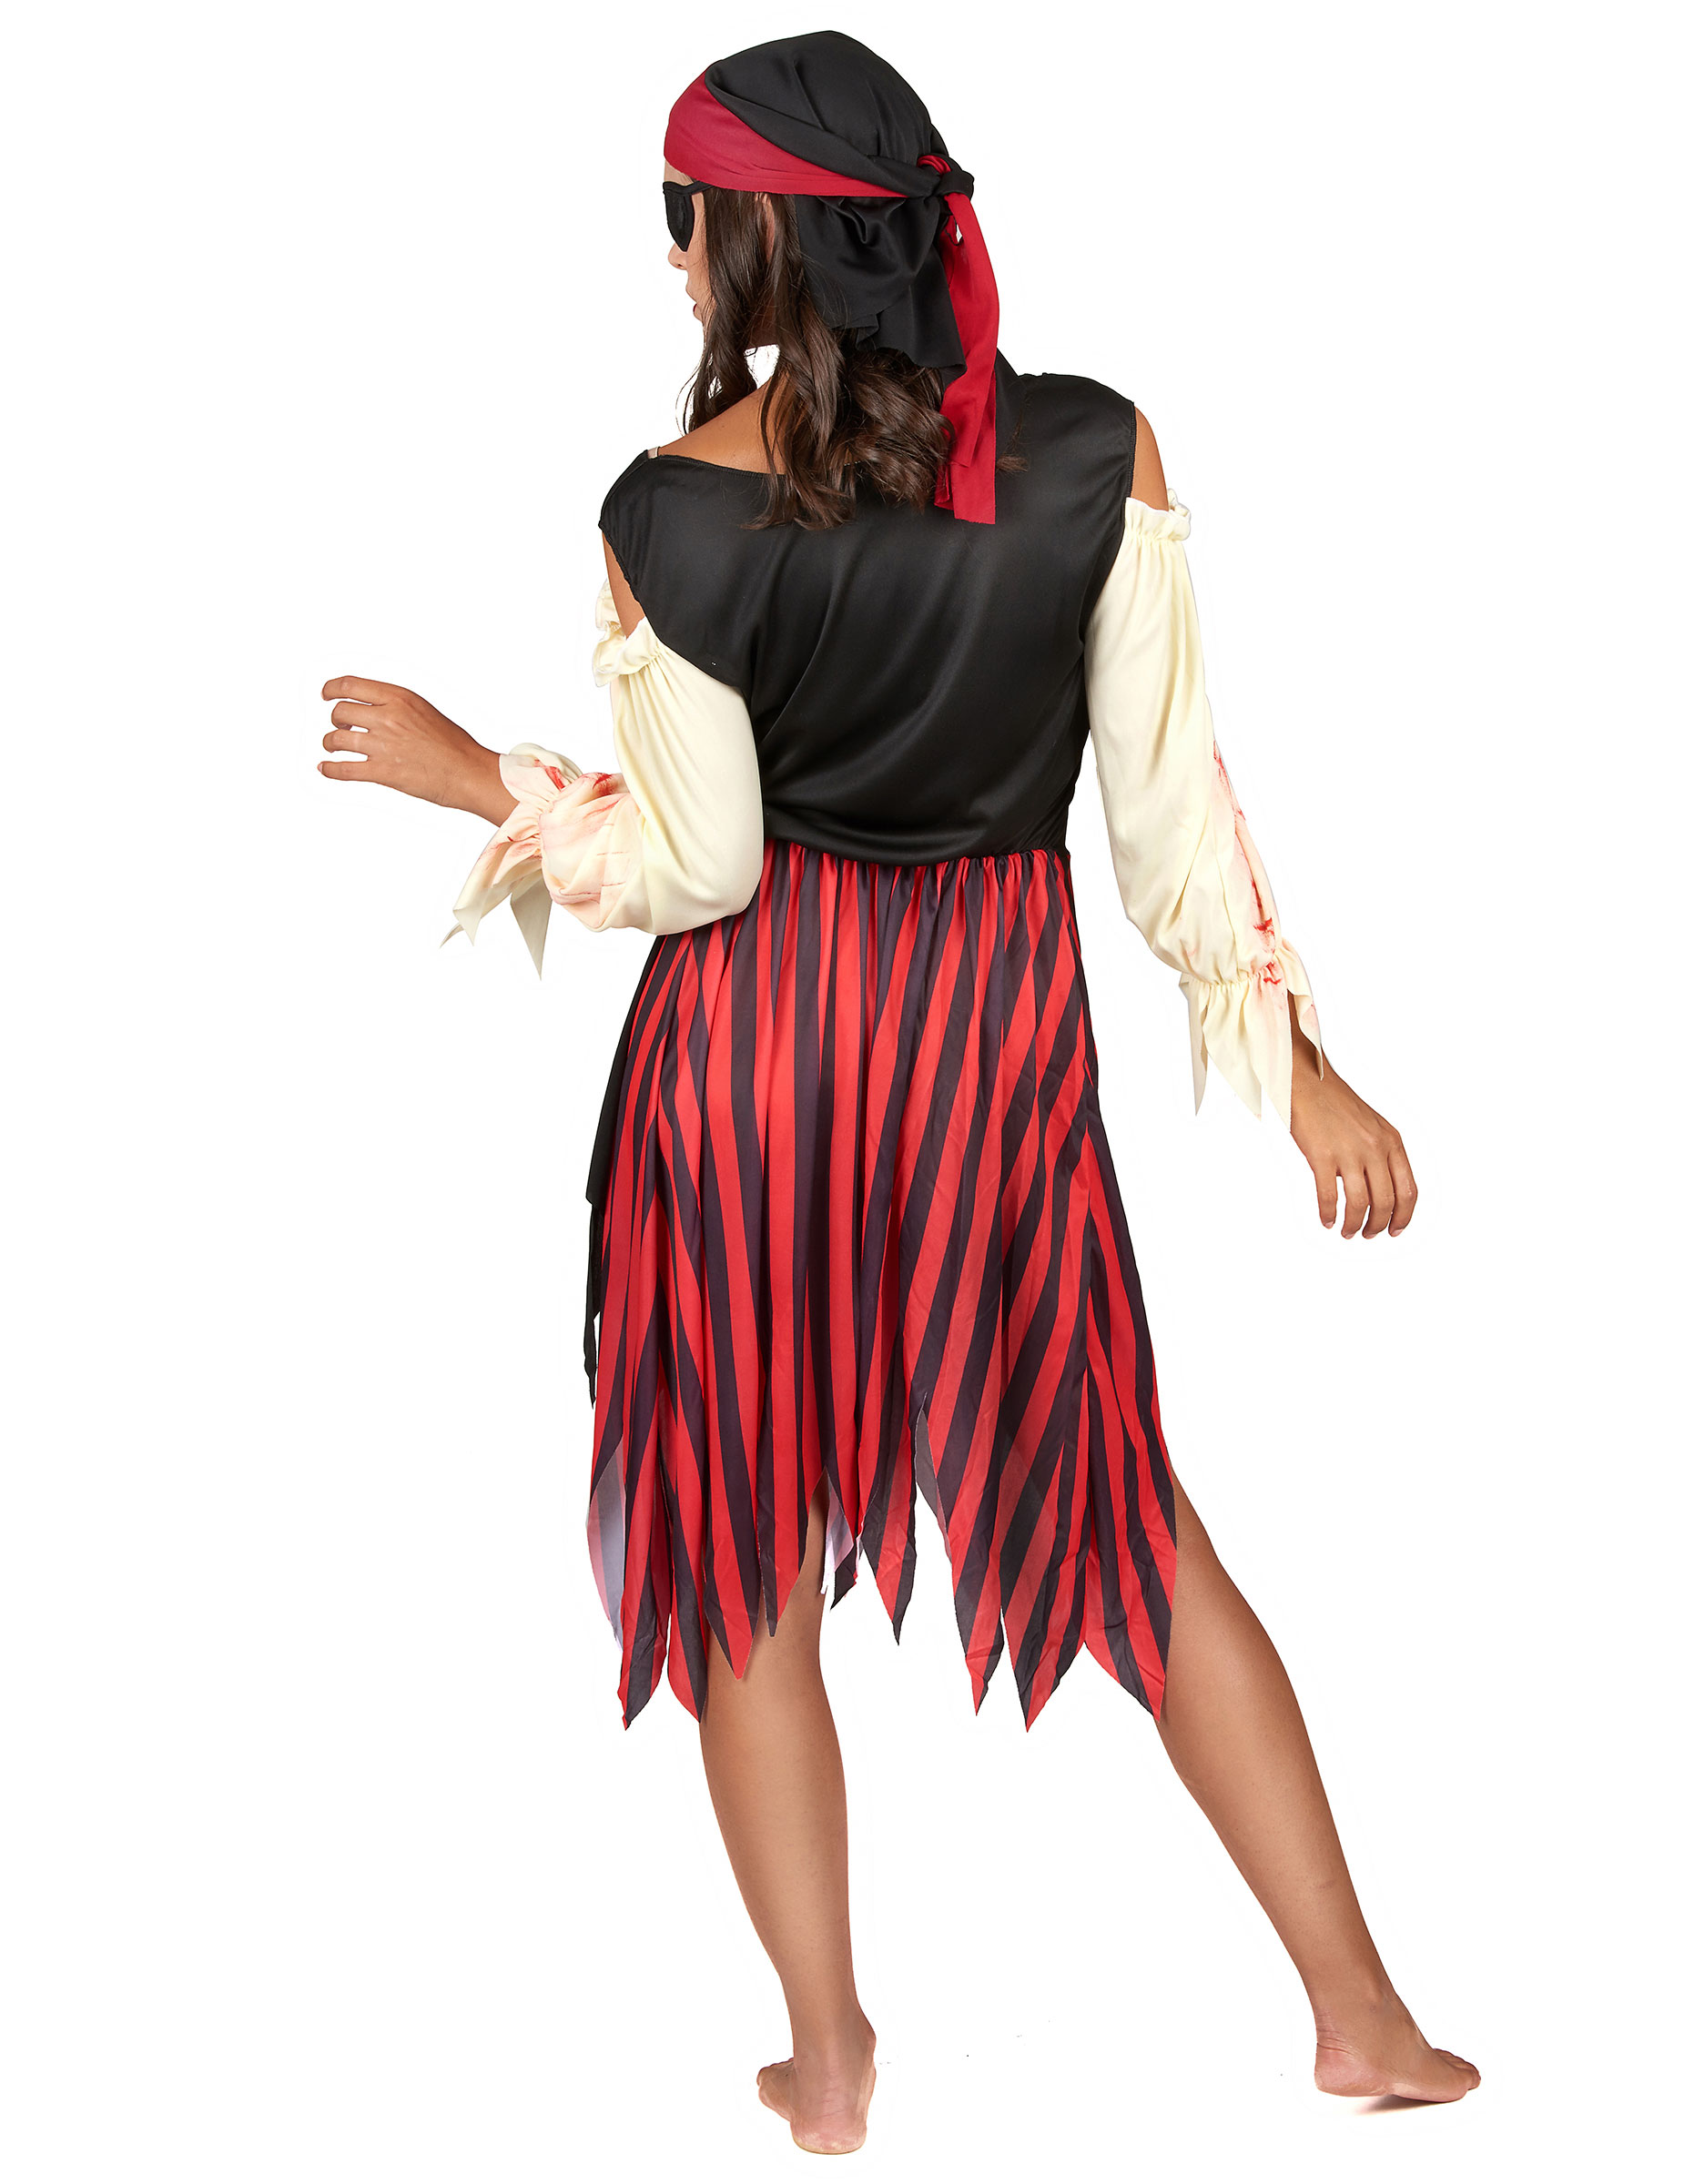 D guisement pirate zombie adulte halloween pour femme achat de d guisements adultes sur - Deguisement halloween adulte ...